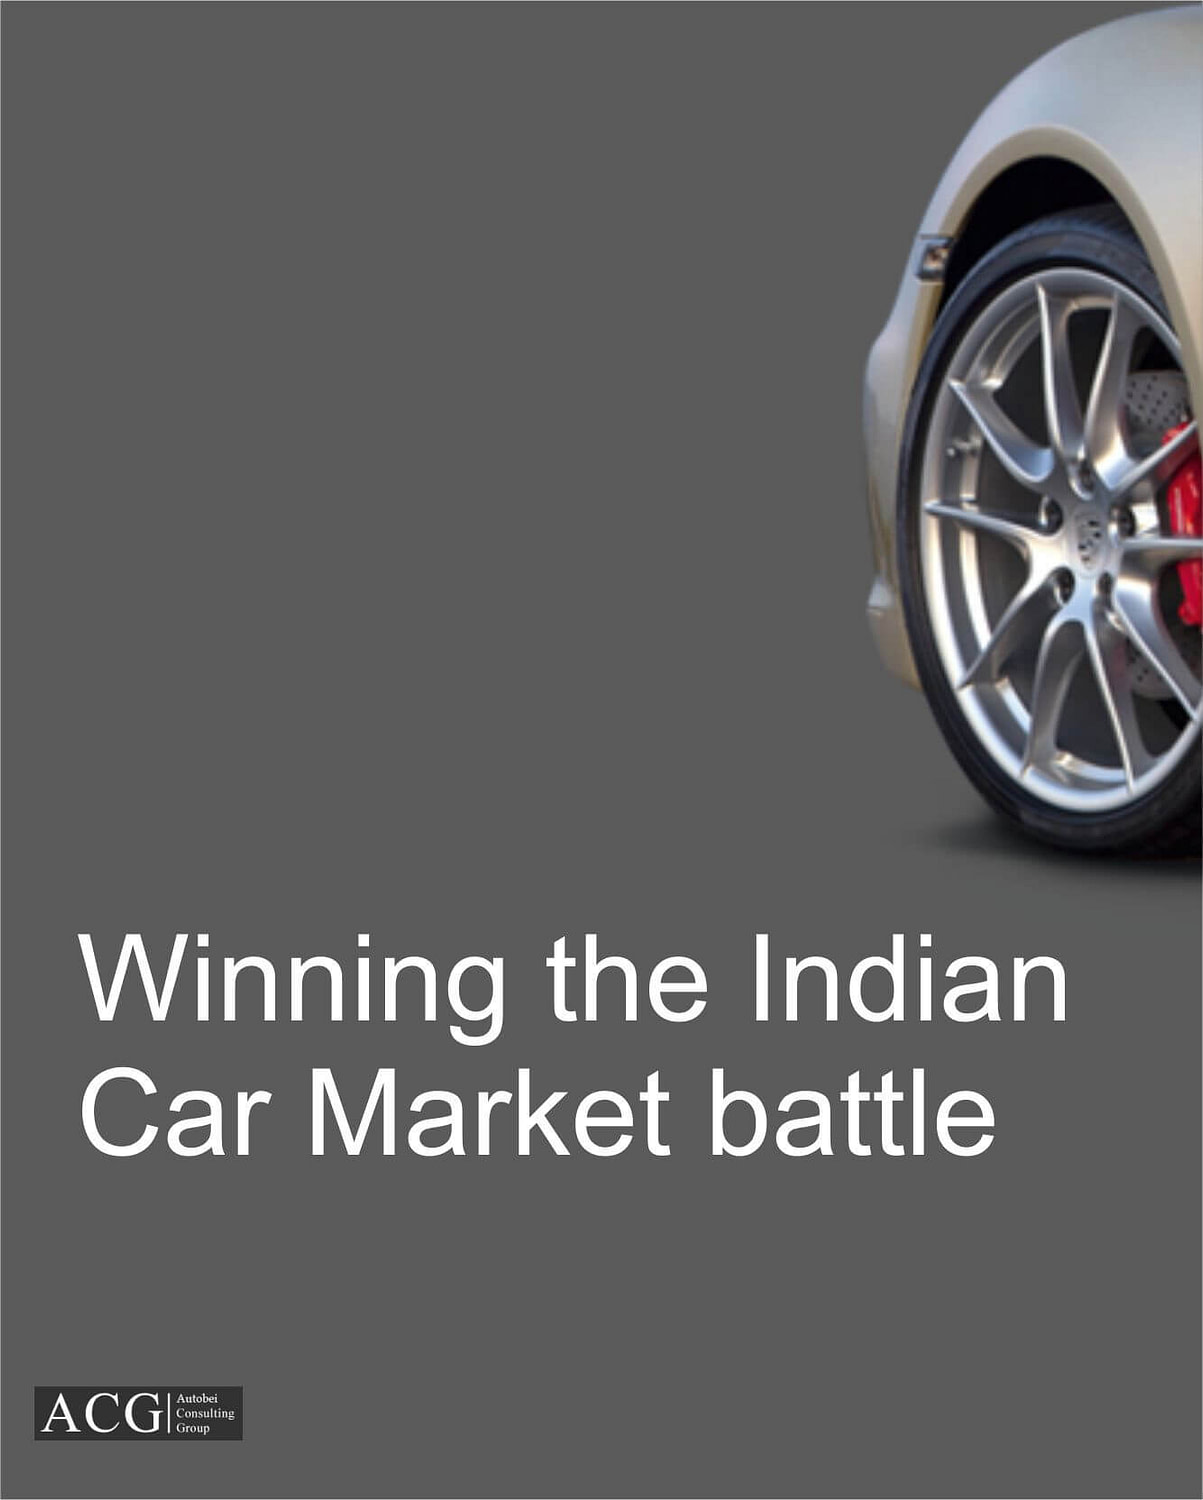 Winning the Indian Car Market battle